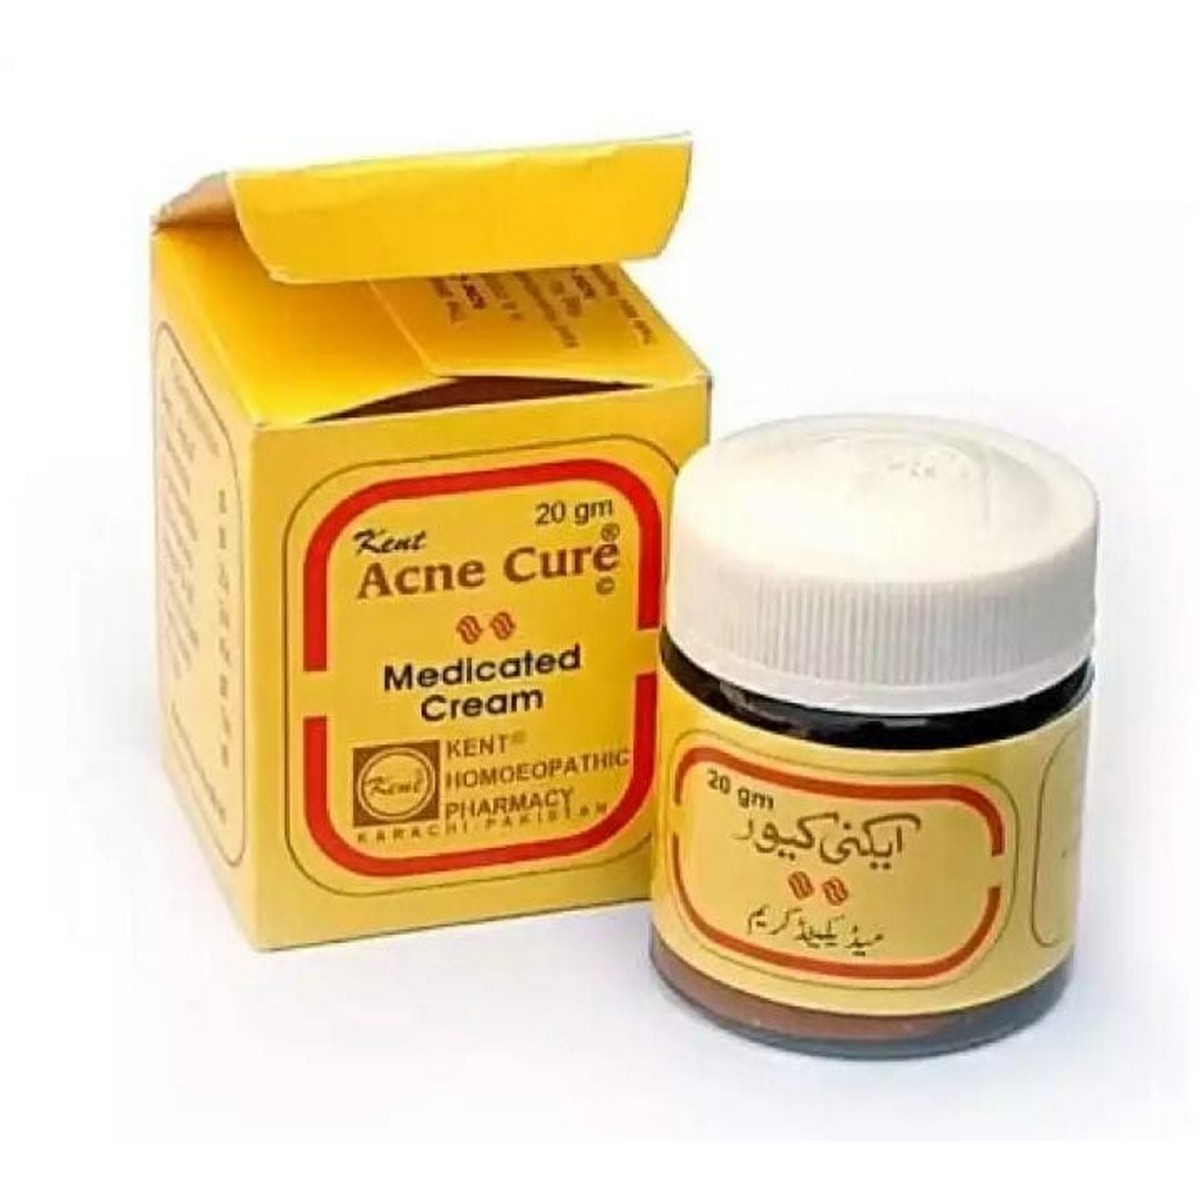 Acne Cure Cream 20 Grams For Men's And Women's -BEST RESULT